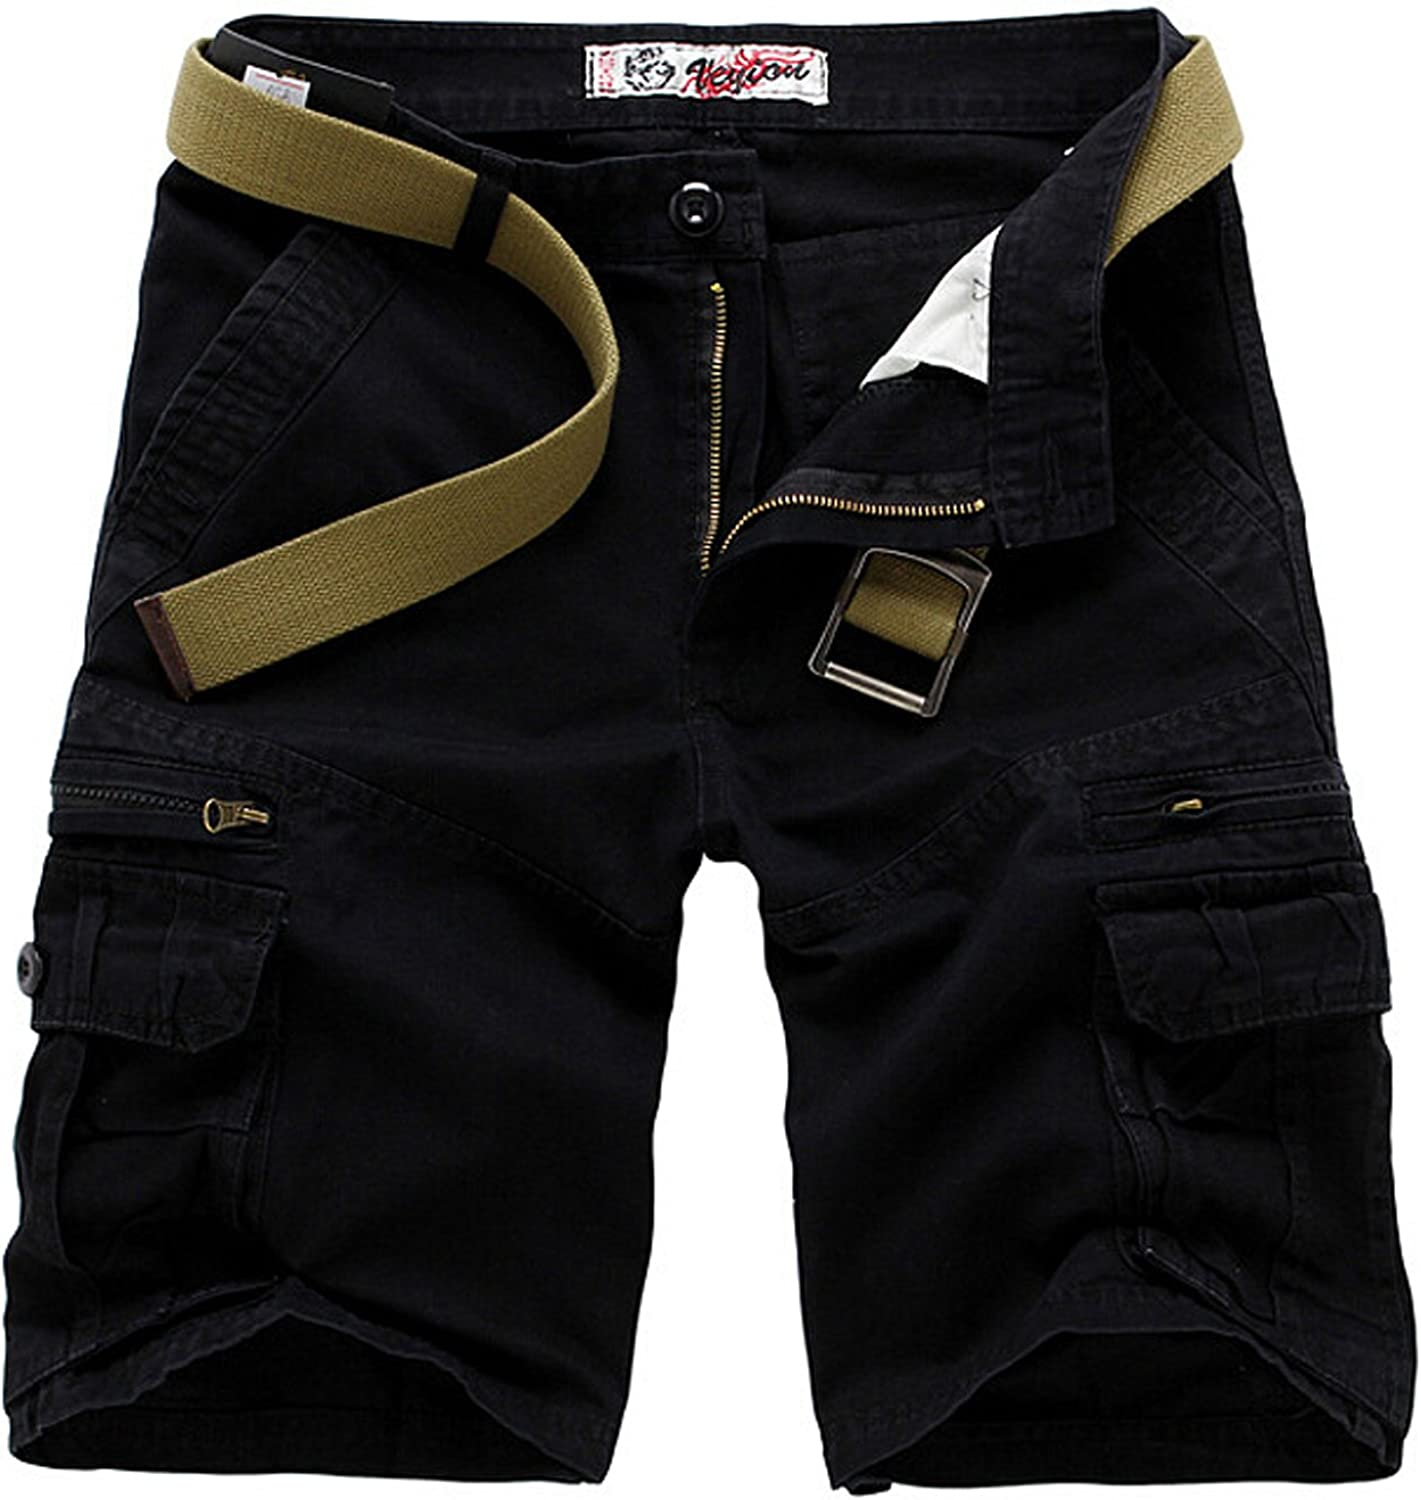 Letuwj Mens Cargo Shorts Multi-Pockets Causal Trouser Solid Color Coton